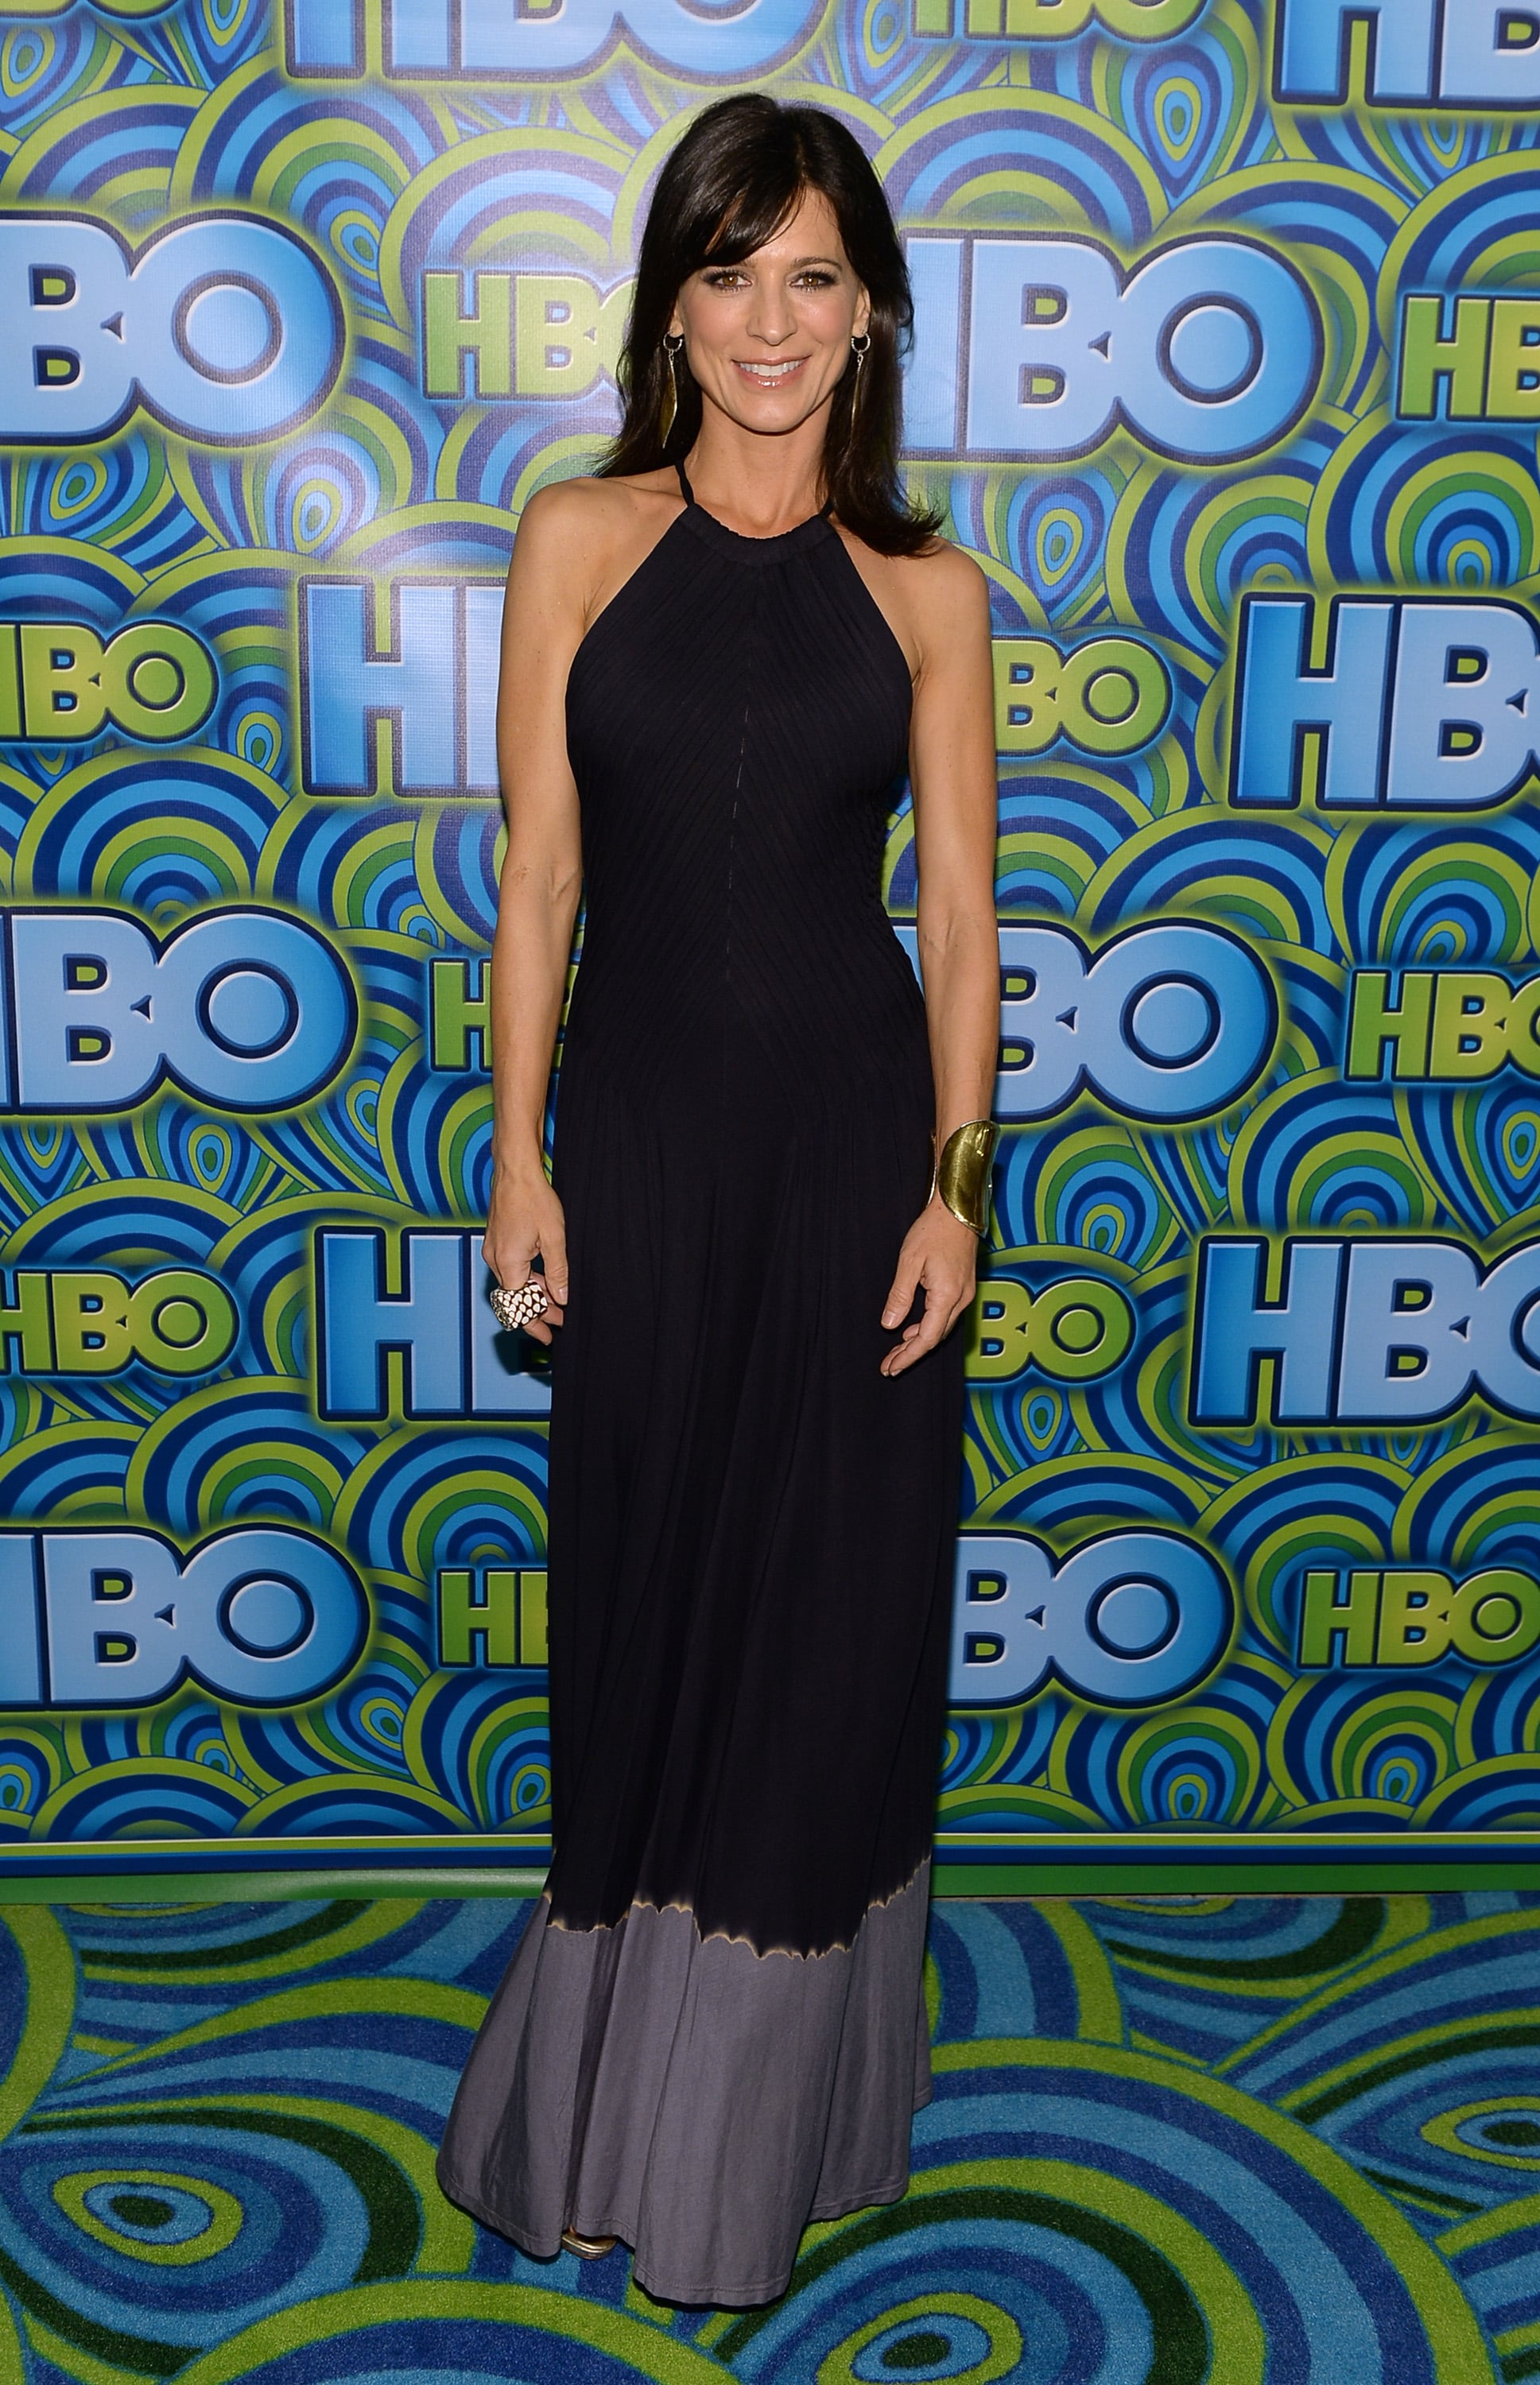 Perry Reeves bared her shoulders in a minimalist halter dress at the HBO afterparty.